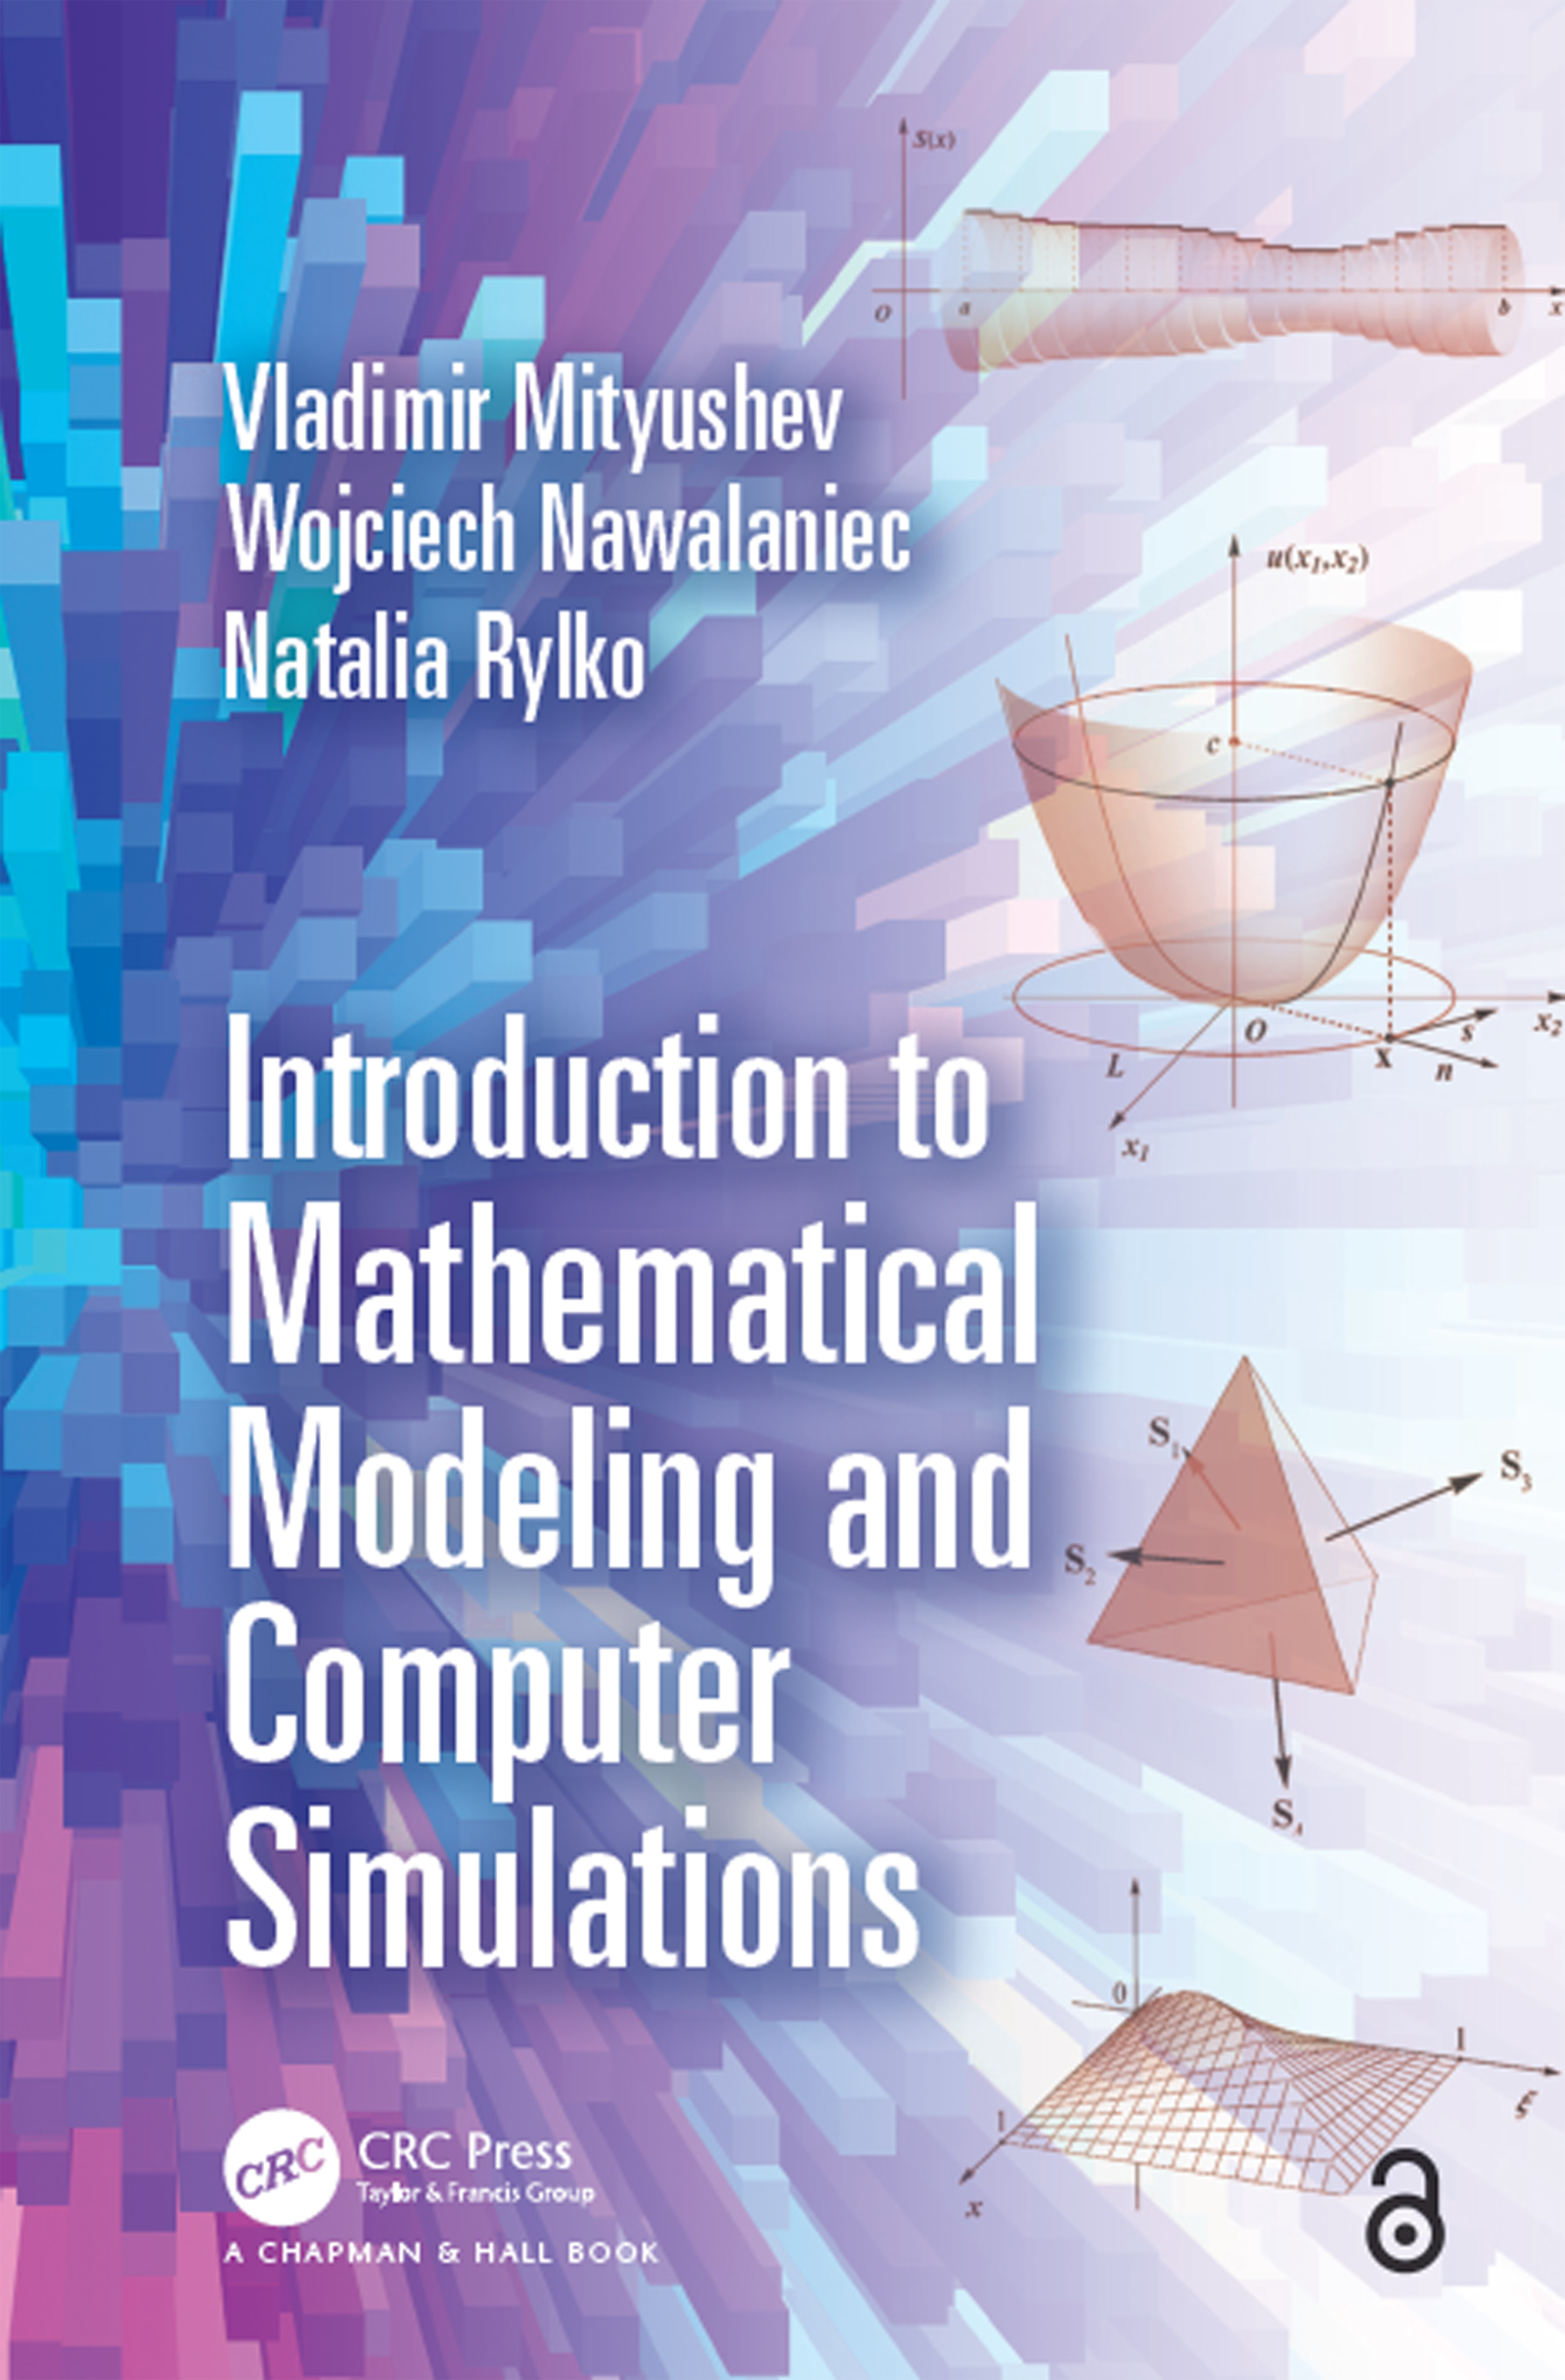 Introduction to Mathematical Modeling and Computer Simulations